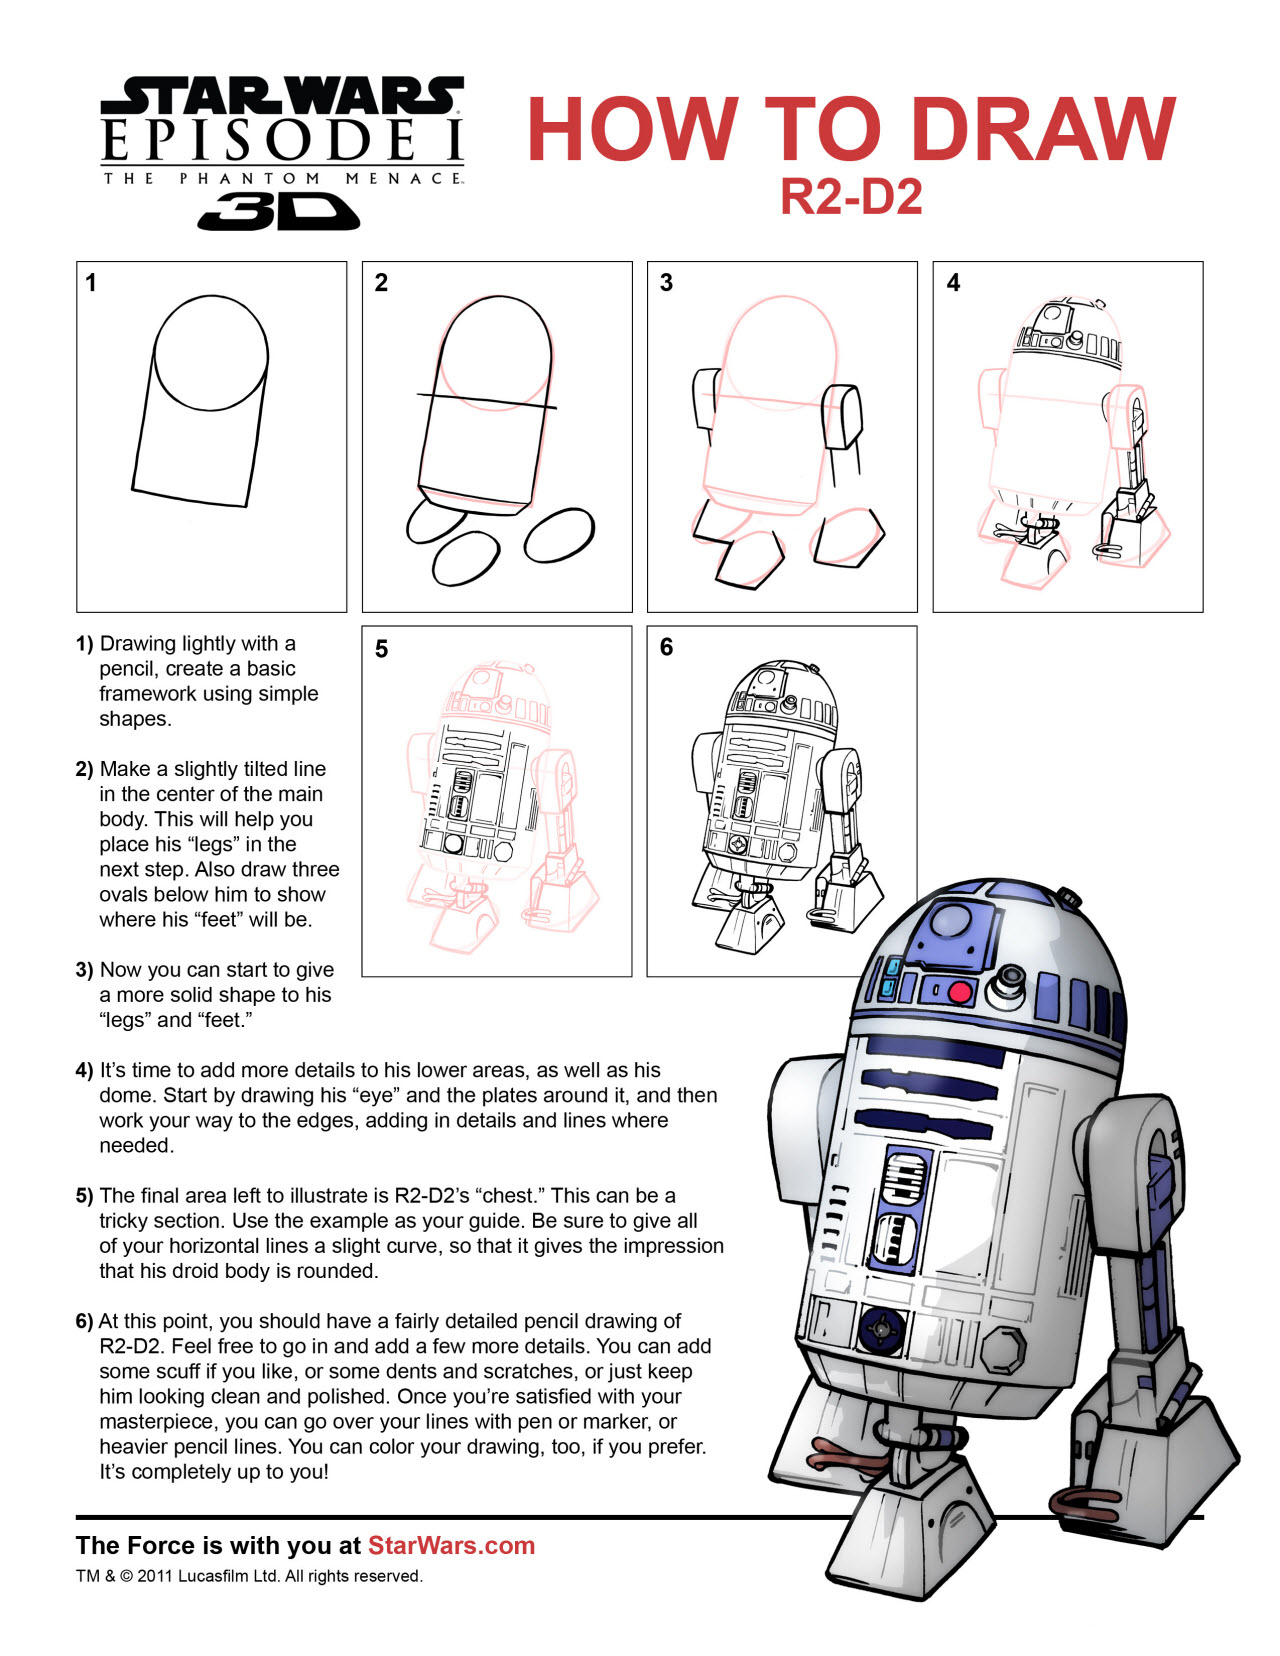 Kids DRAW R2-D2 & THE QUEEN OF